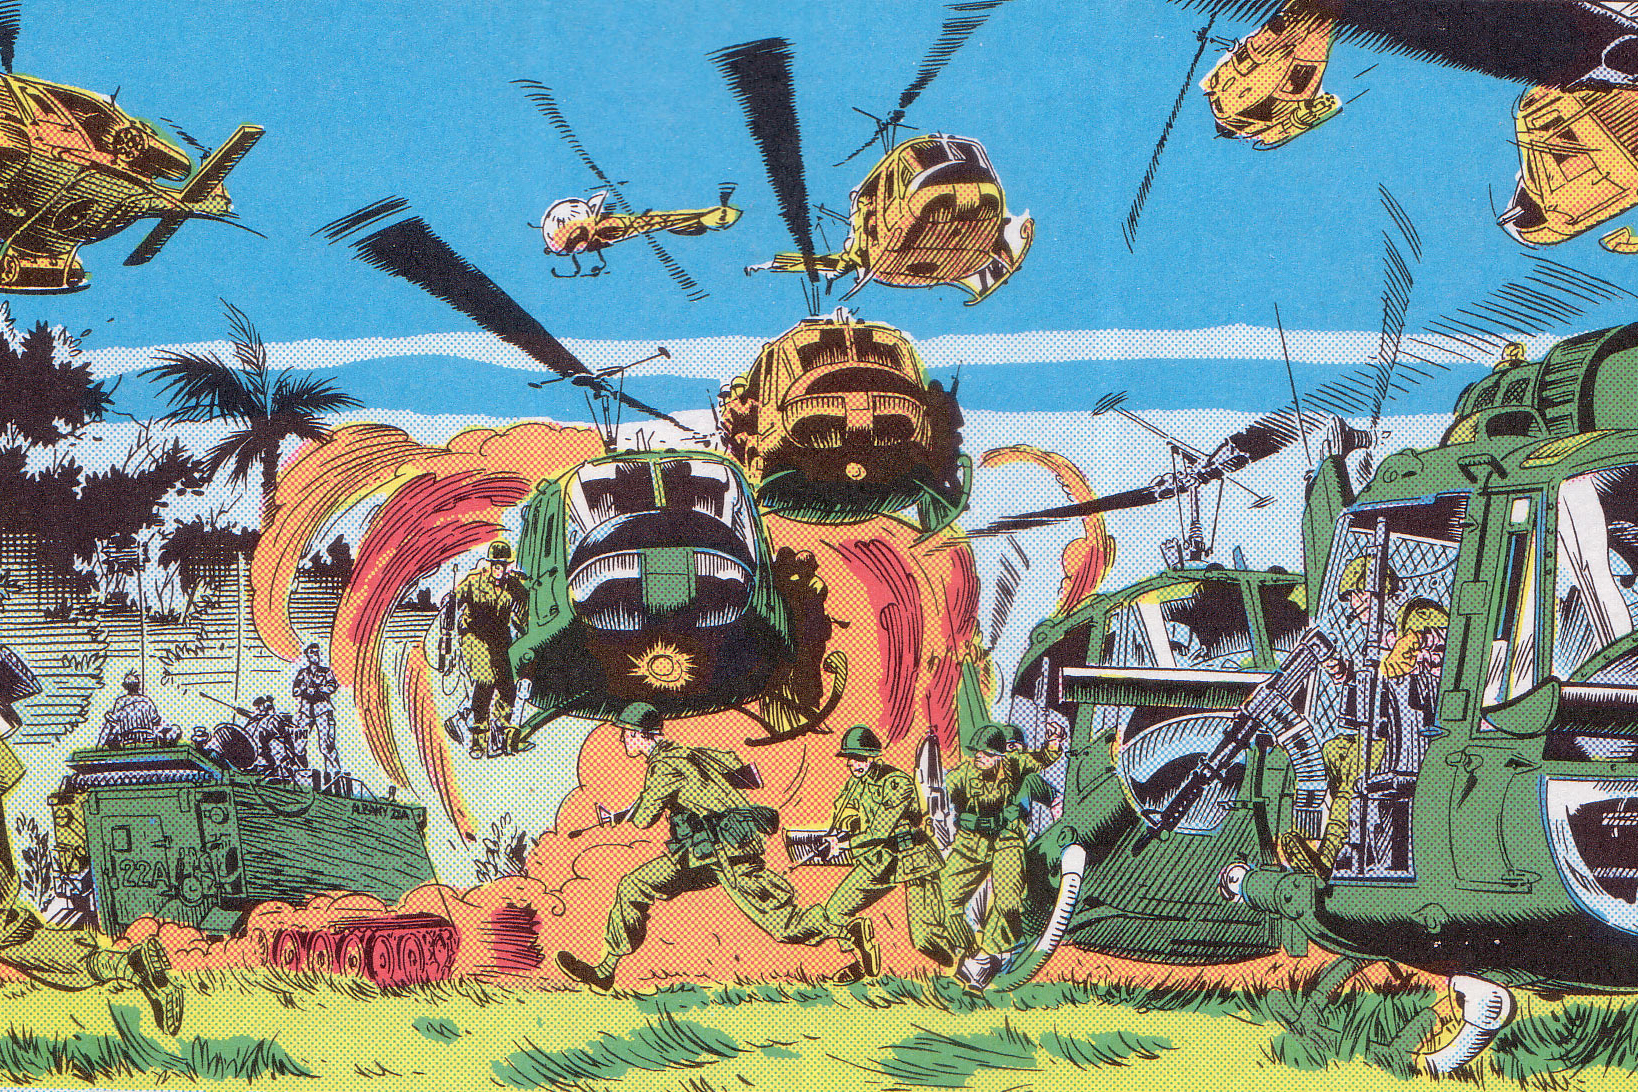 A Panel from the Marvel Comics series 'The 'Nam.'